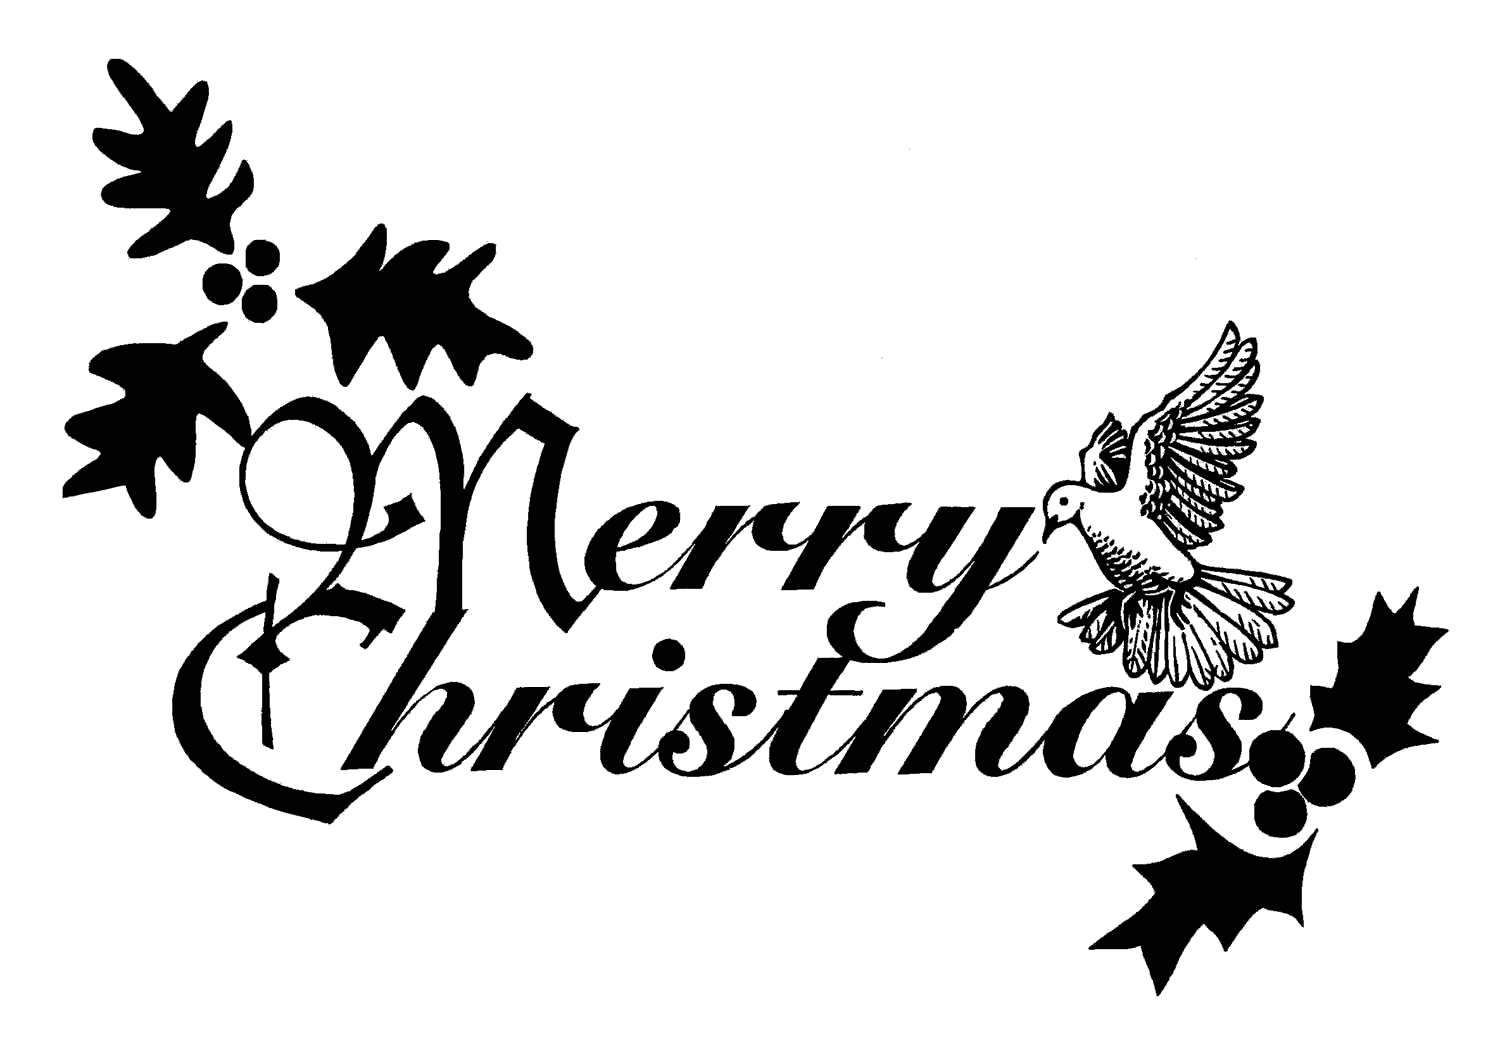 Free Elegant Christmas Clipart Download Free Clip Art Free Clip Art On Clipart Library